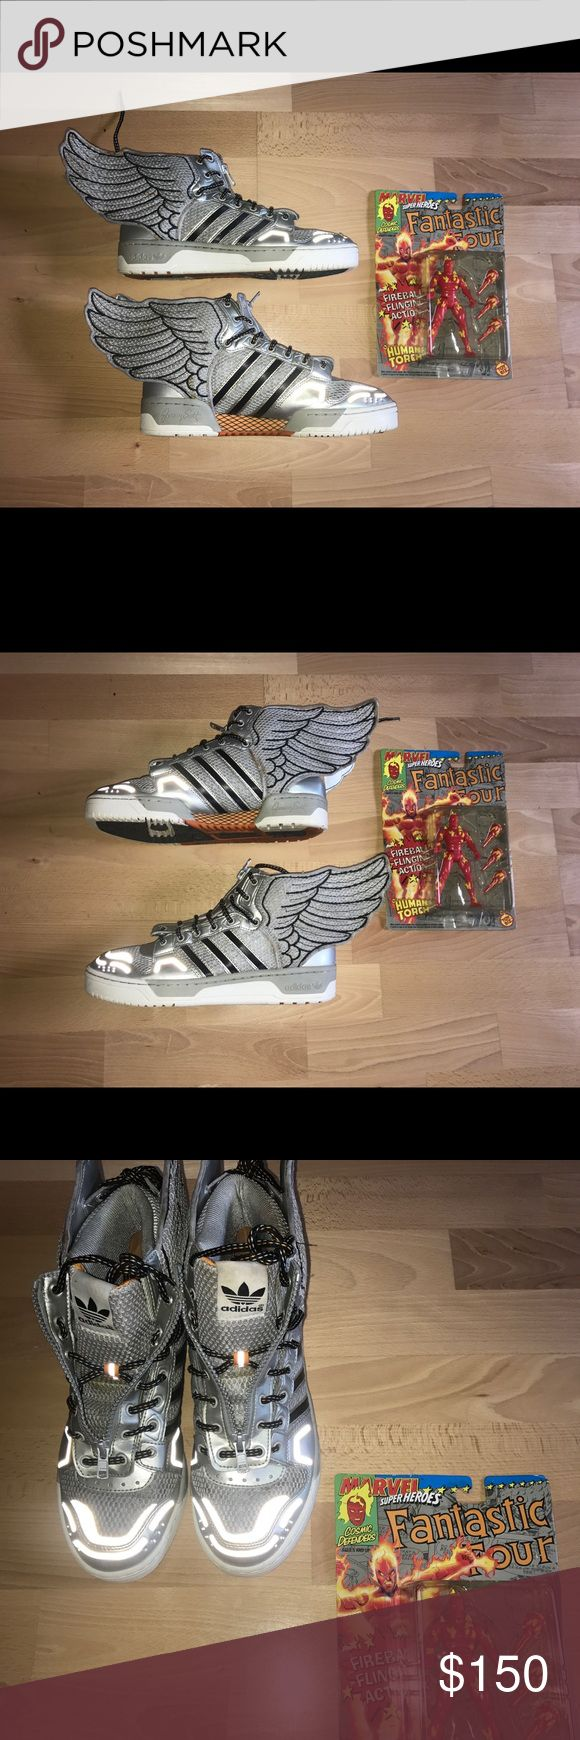 Jeremy Scott Silver Wings Size 9!!!! From Adidas x Jeremy Scott collaboration  *Some discoloration on inside and wings *Does not come with original box Jeremy Scott x Adidas Shoes Sneakers